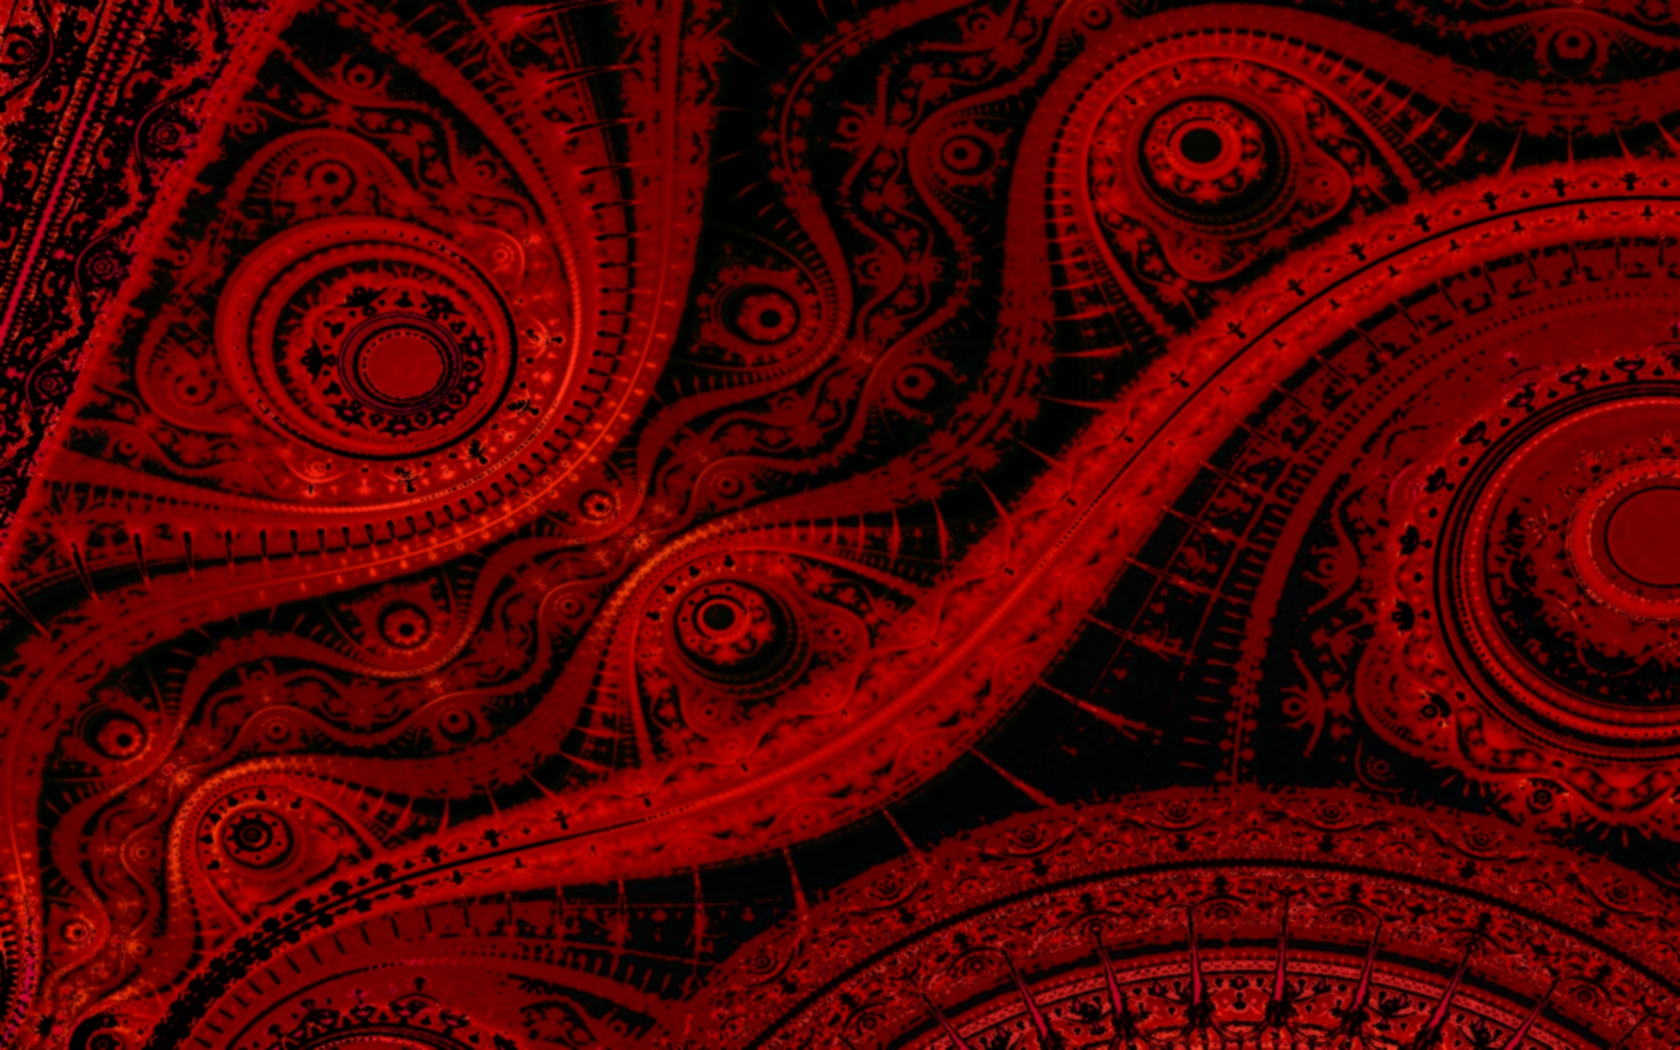 Abstract red fractal julia background hd wallpaper Black Background 1680x1050